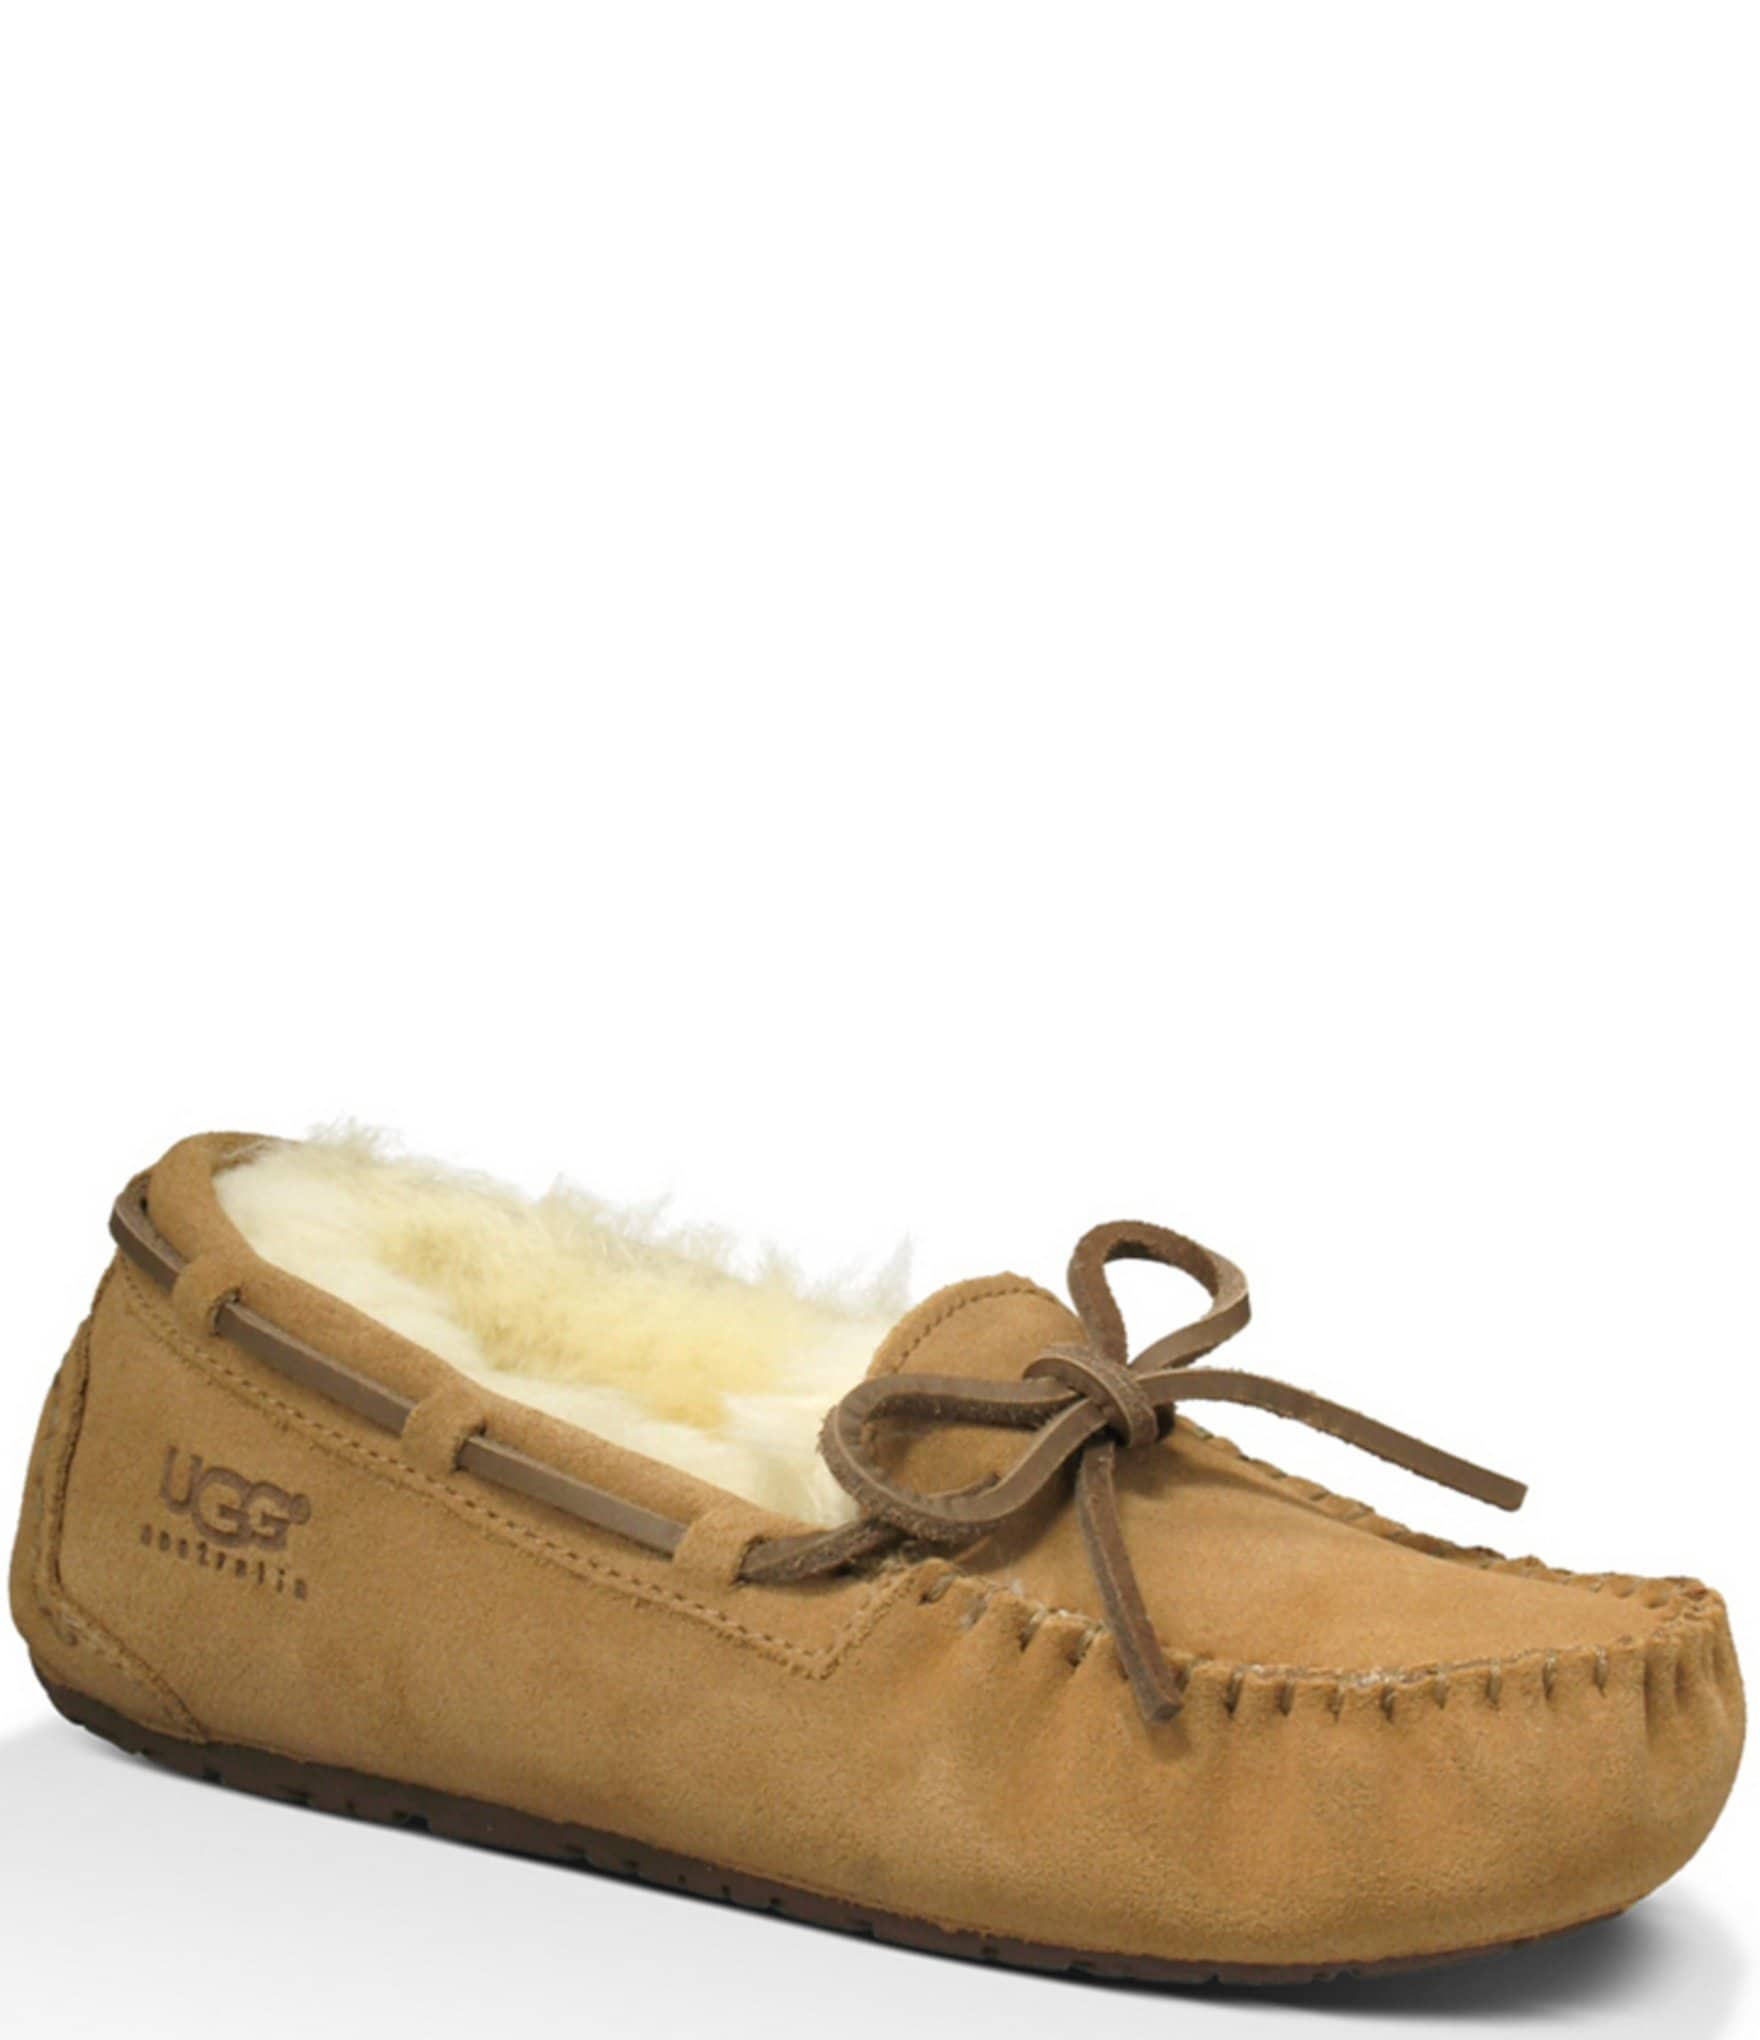 50f9b39f56f ugg slippers  Shoes for Women